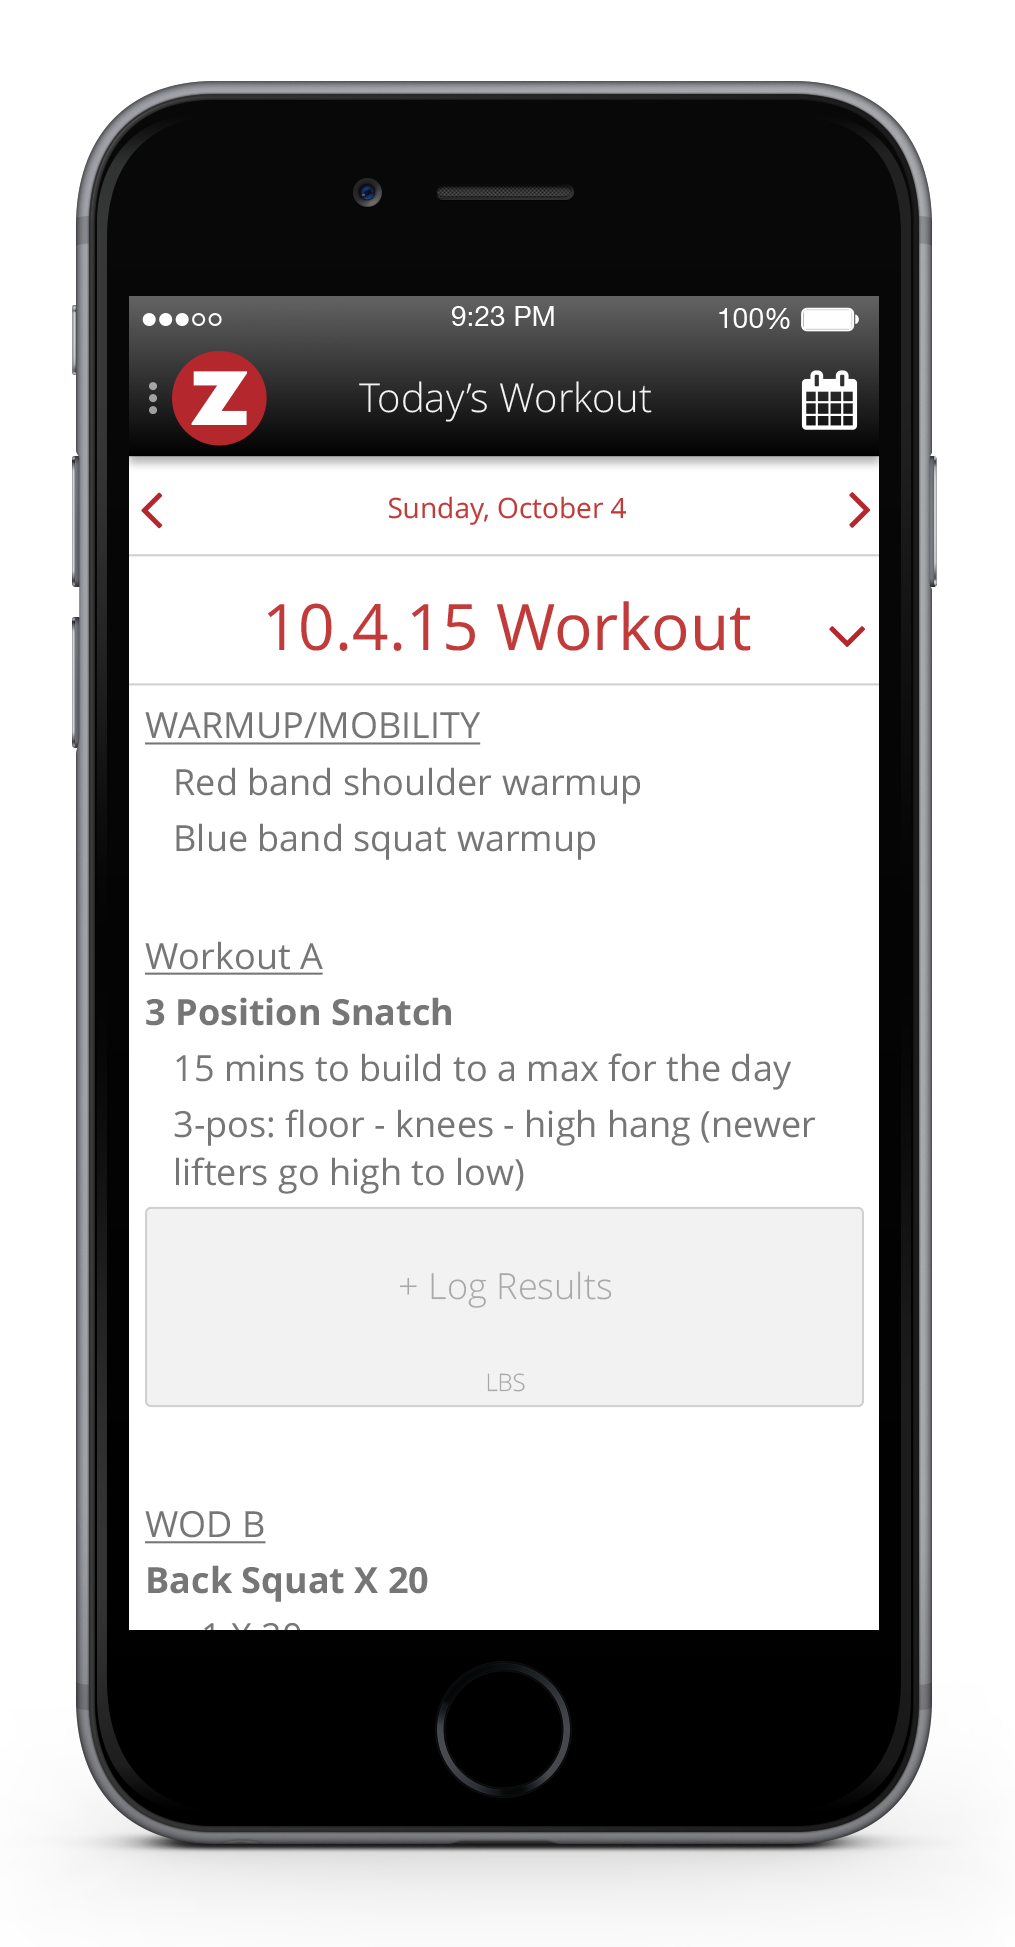 Engage your community and increase accountability with in-app Advanced Workout Tracking features. Members can quickly check the day's workout, log their results and view your community leaderboard conveniently from their mobile device.